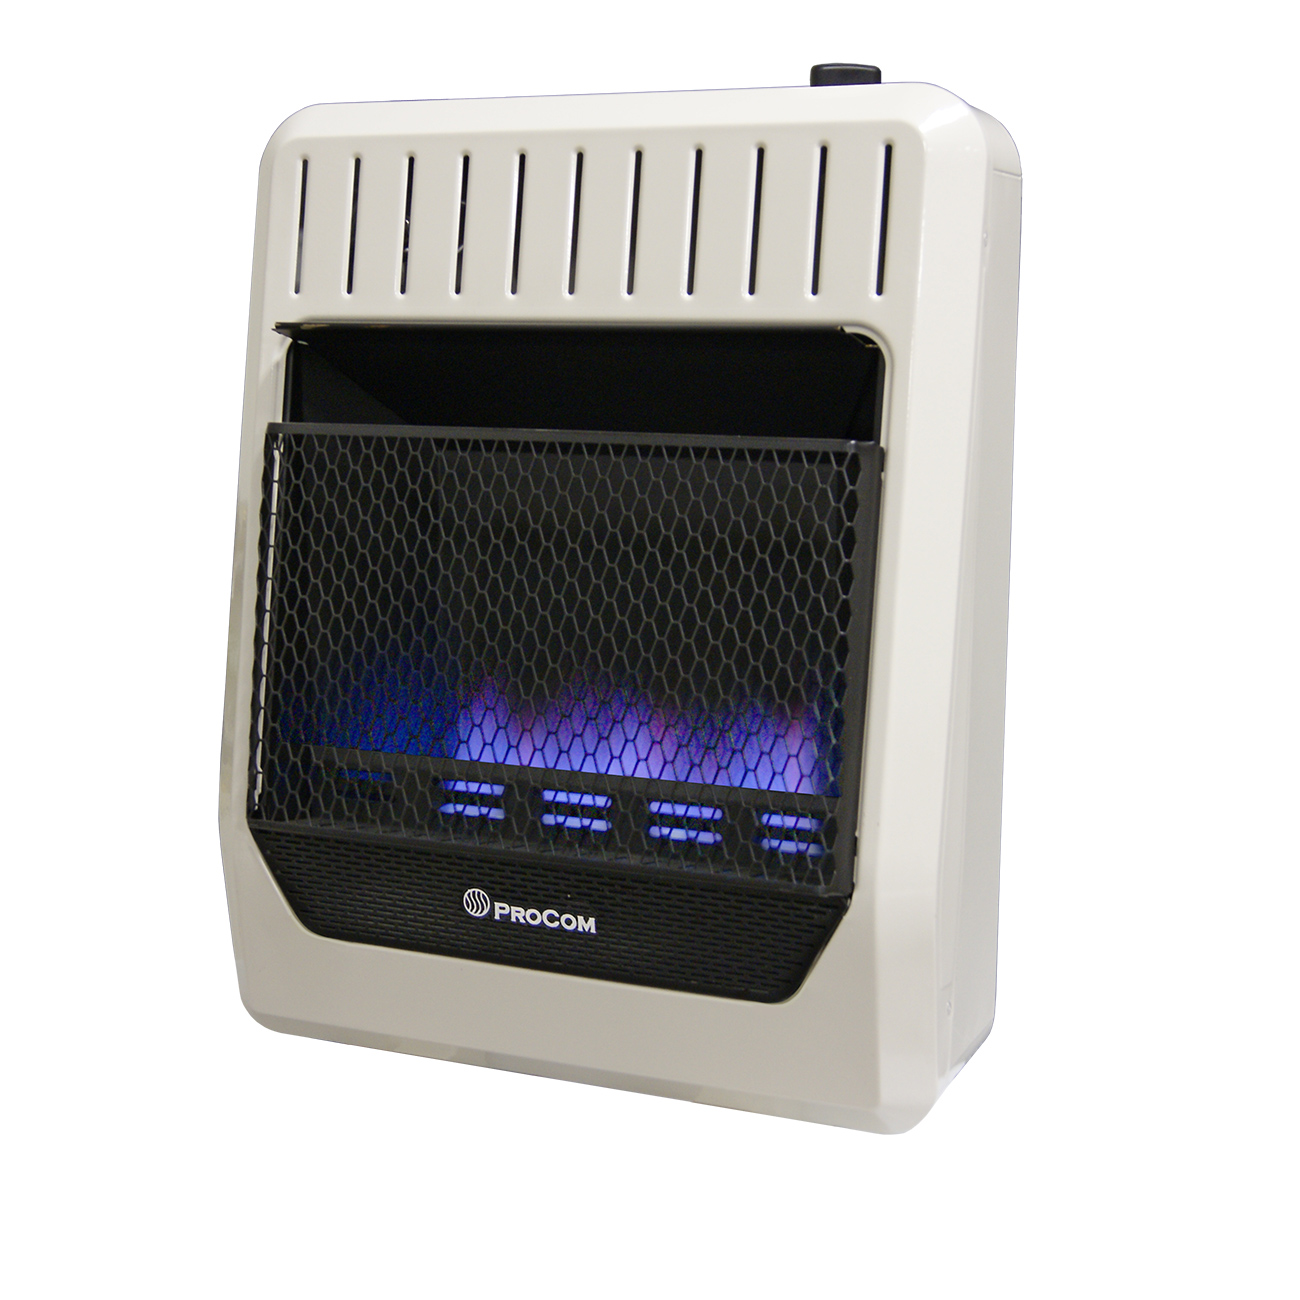 Ventless Blue Flame Heaters 75